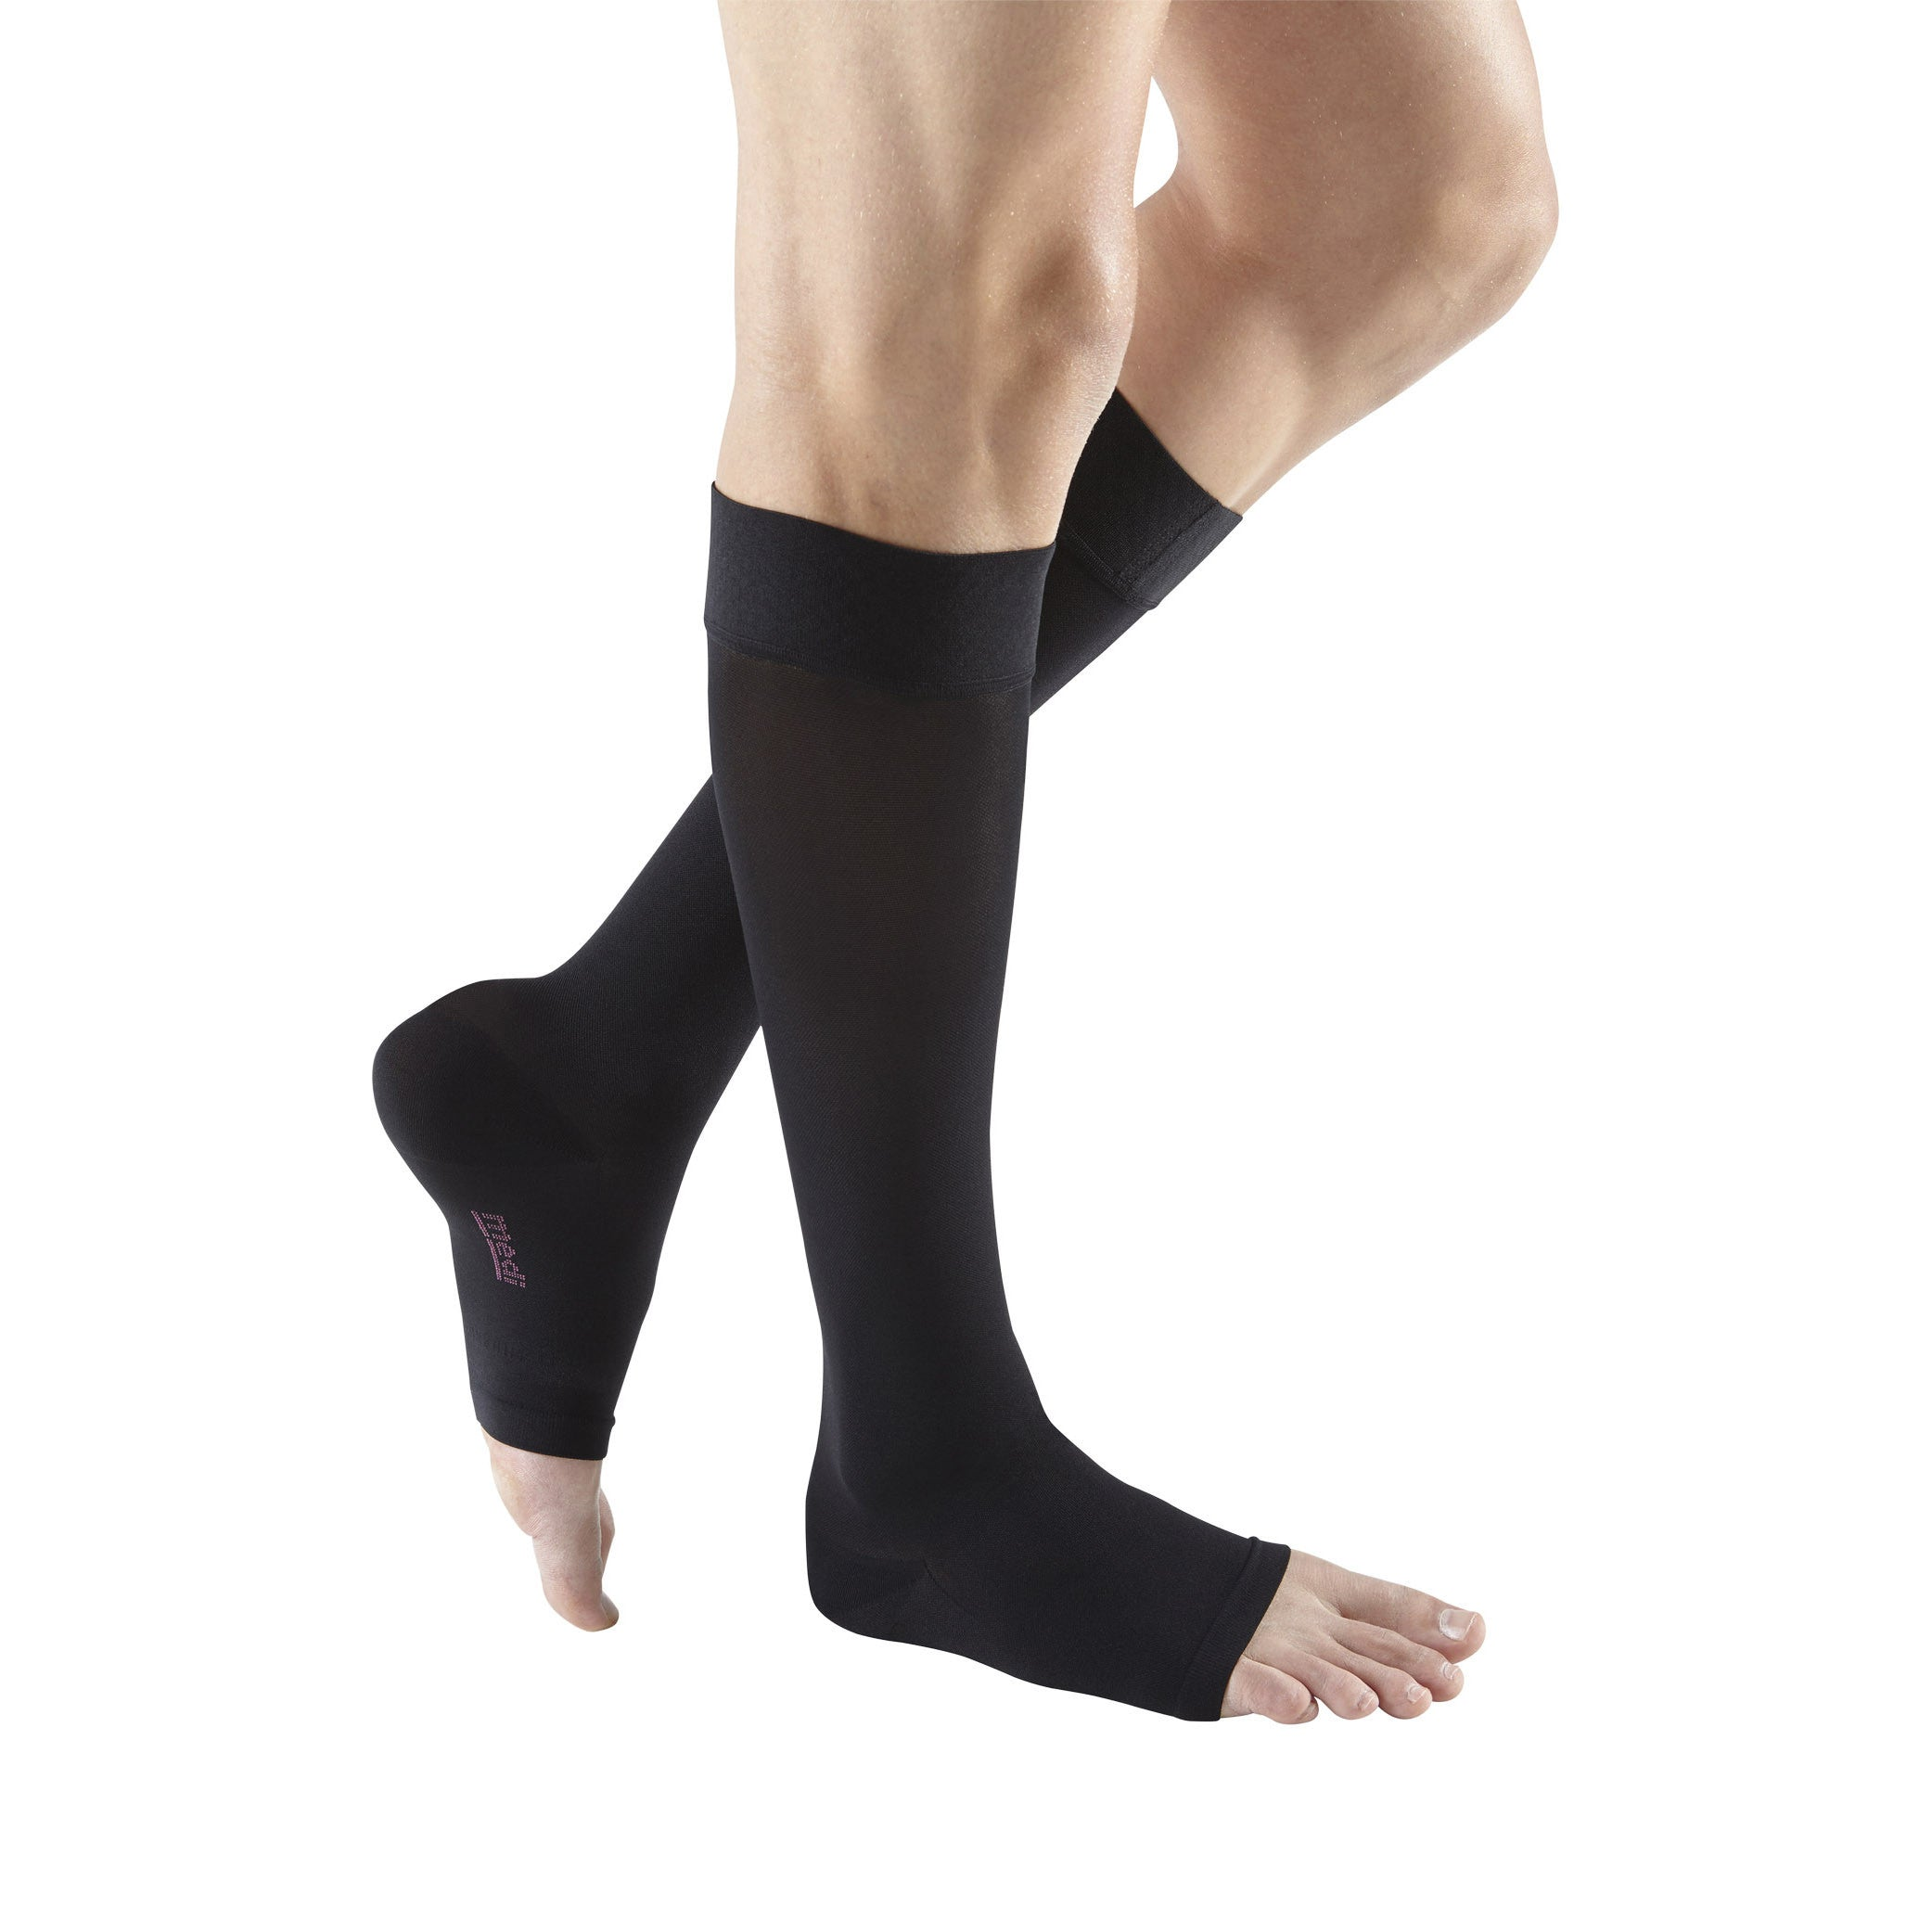 78cac0208d4 Medi Plus Open Toe Knee Highs w Silicone Dot Band - 20-30 mmHg ...